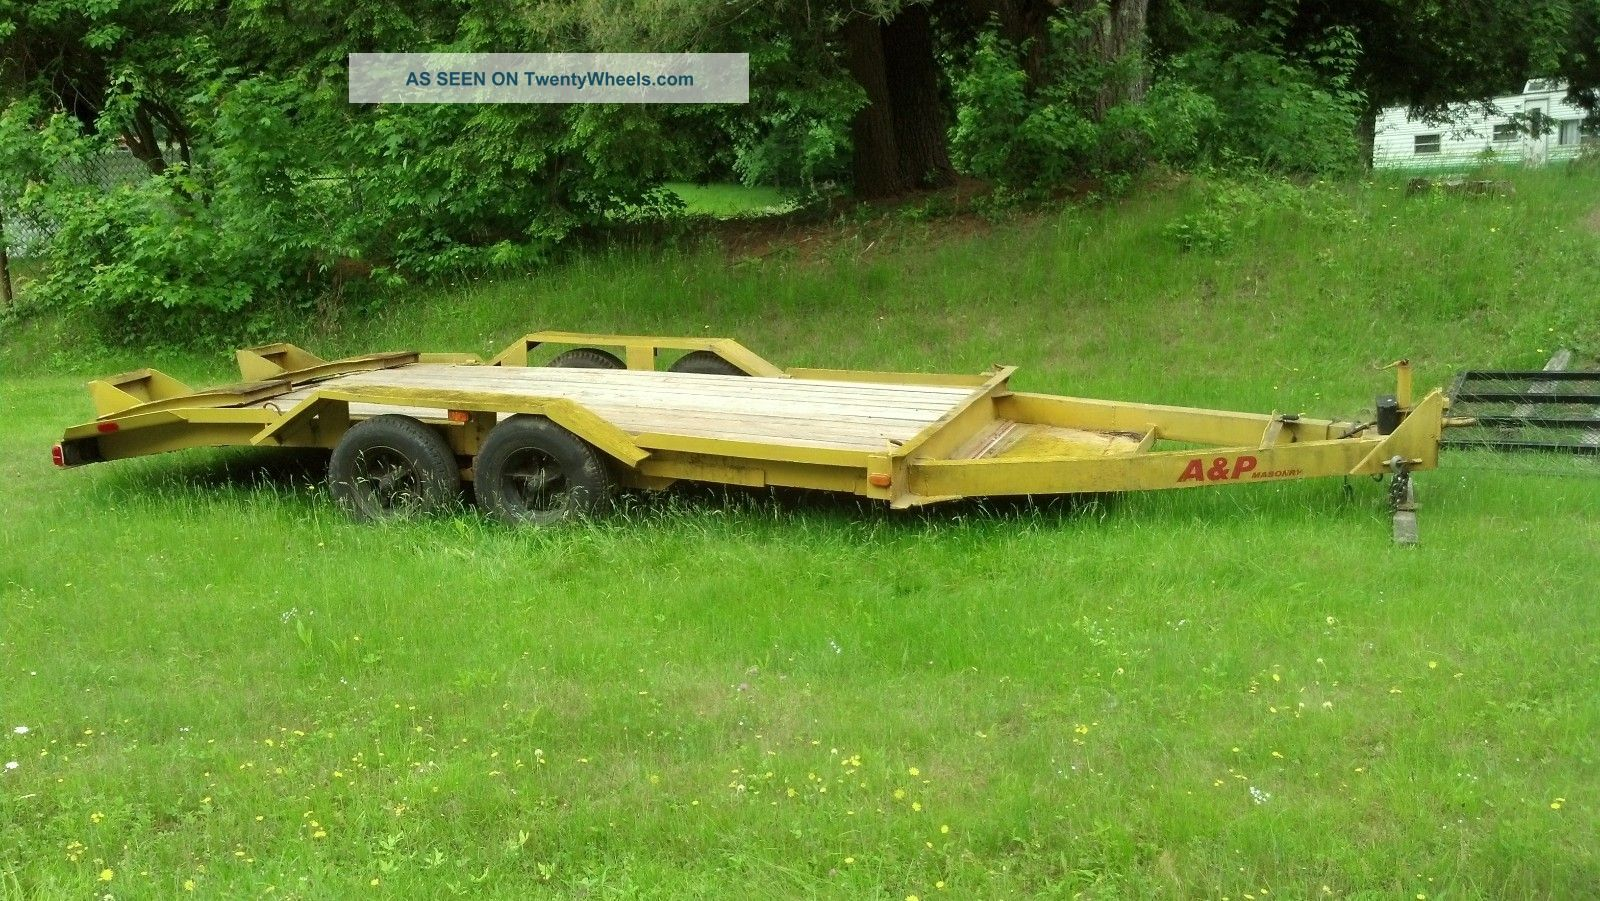 Equipment Trailer Flatbed 7 Ton Skidsteer Backhoe Bed Construction Utility Trailers photo